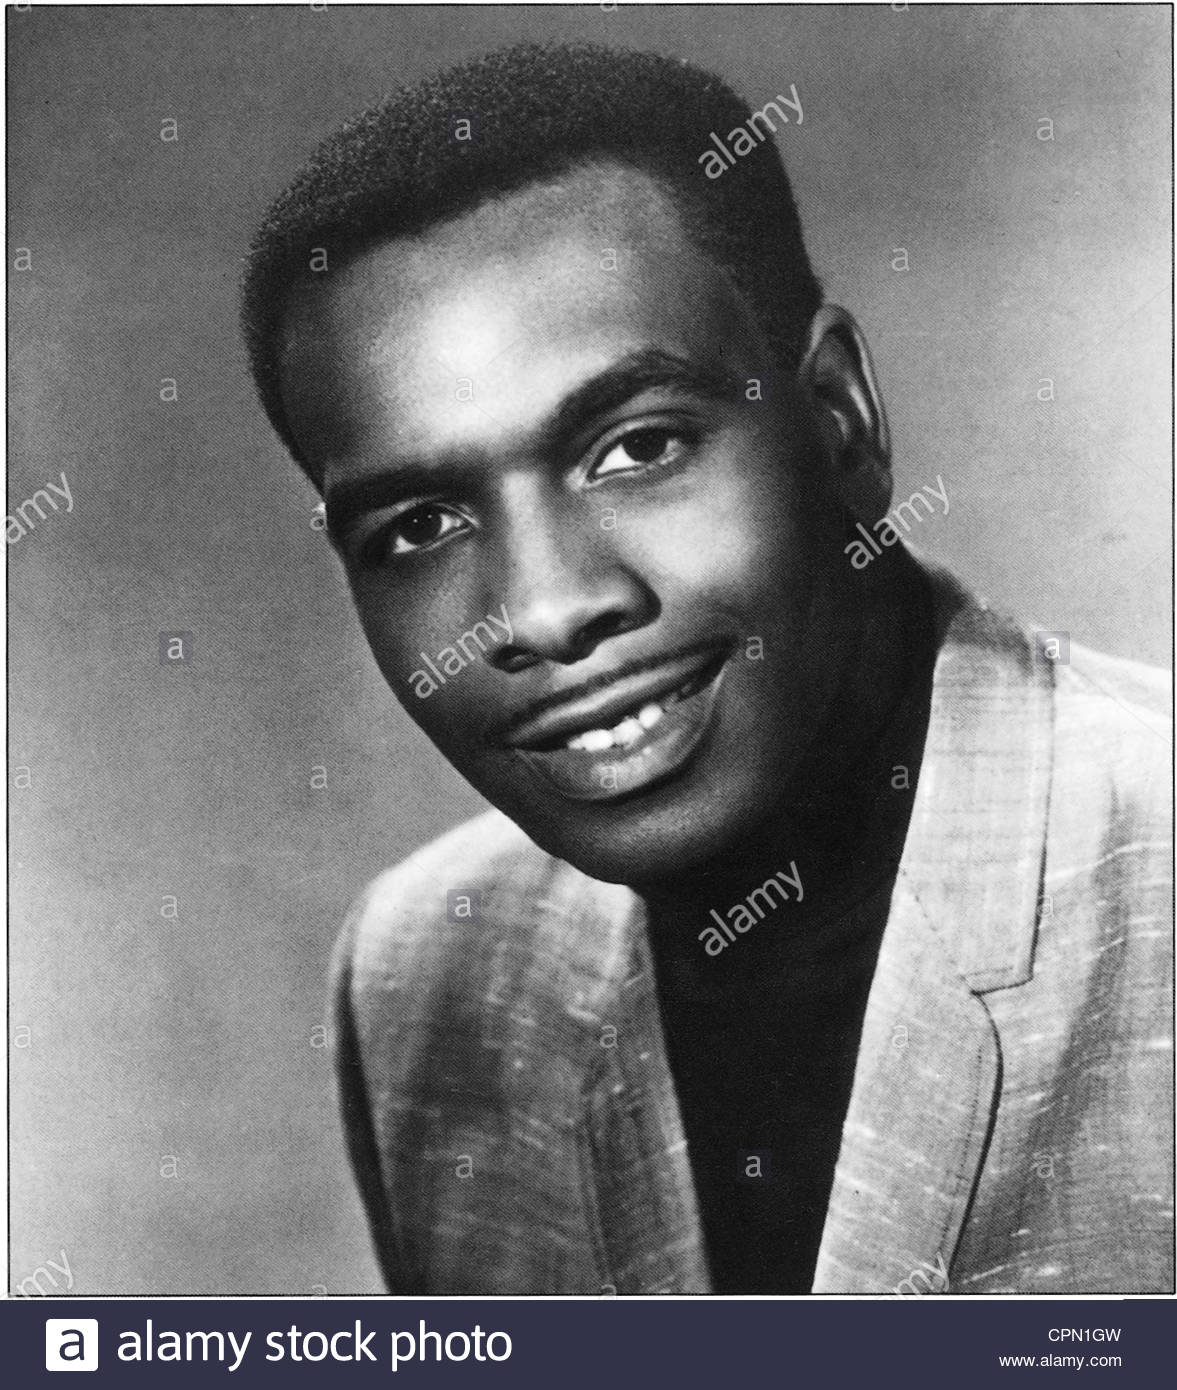 circa 1960's - American soul singer and songwriter William Bell. Editorial use only. Photo Courtesy Granamour - Stock Image